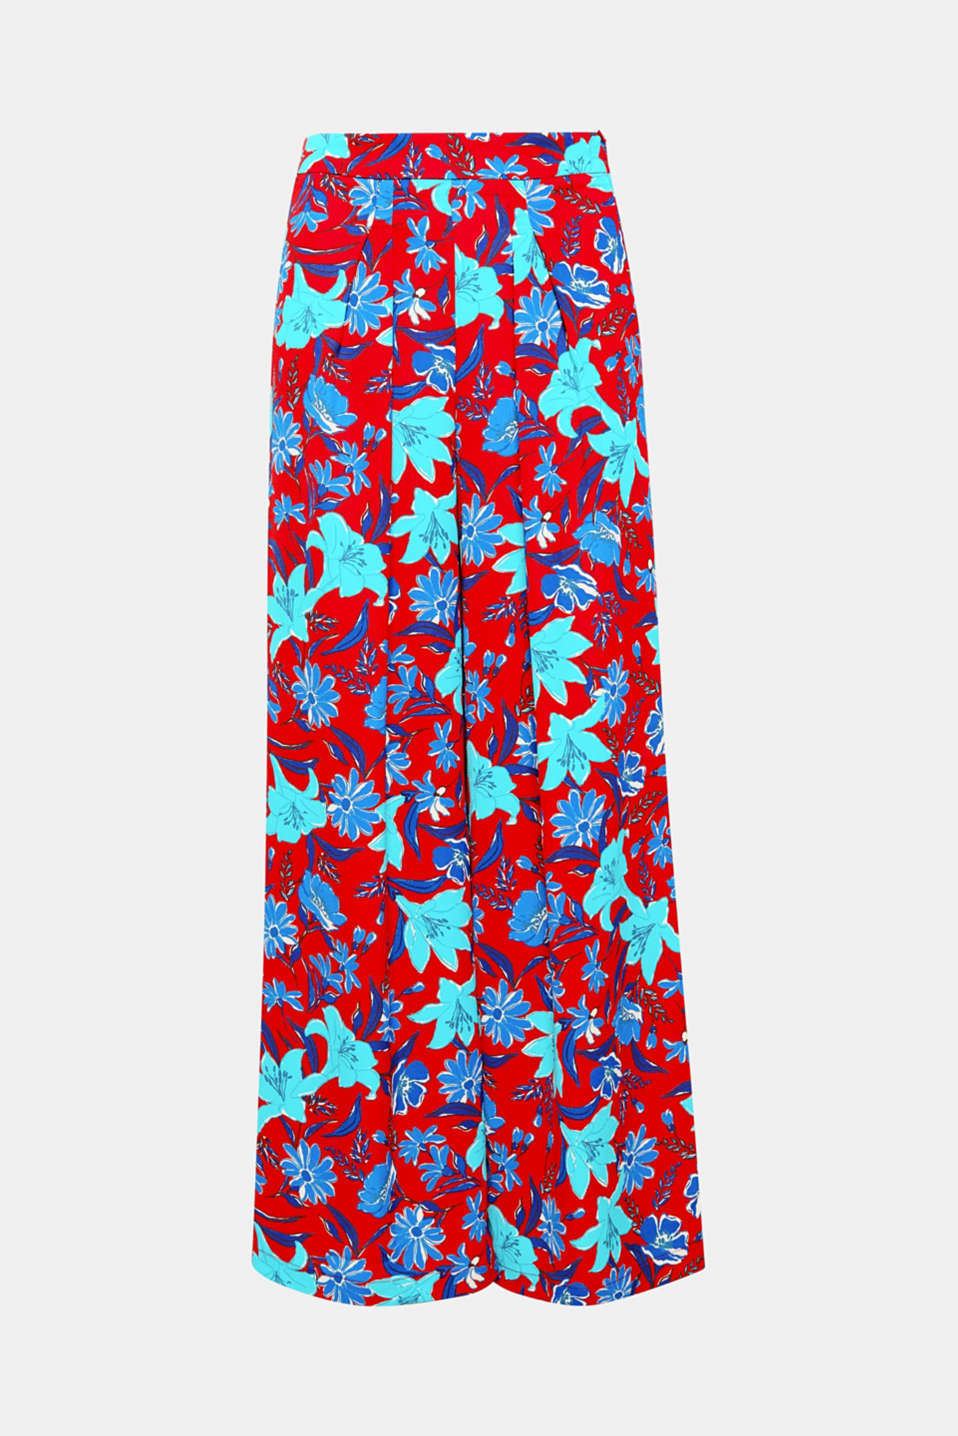 Striking flowers on flowing crêpe make these palazzo style trousers with waist pleats and an extra-wide leg a great fashion piece for beautiful summer days and long party nights!